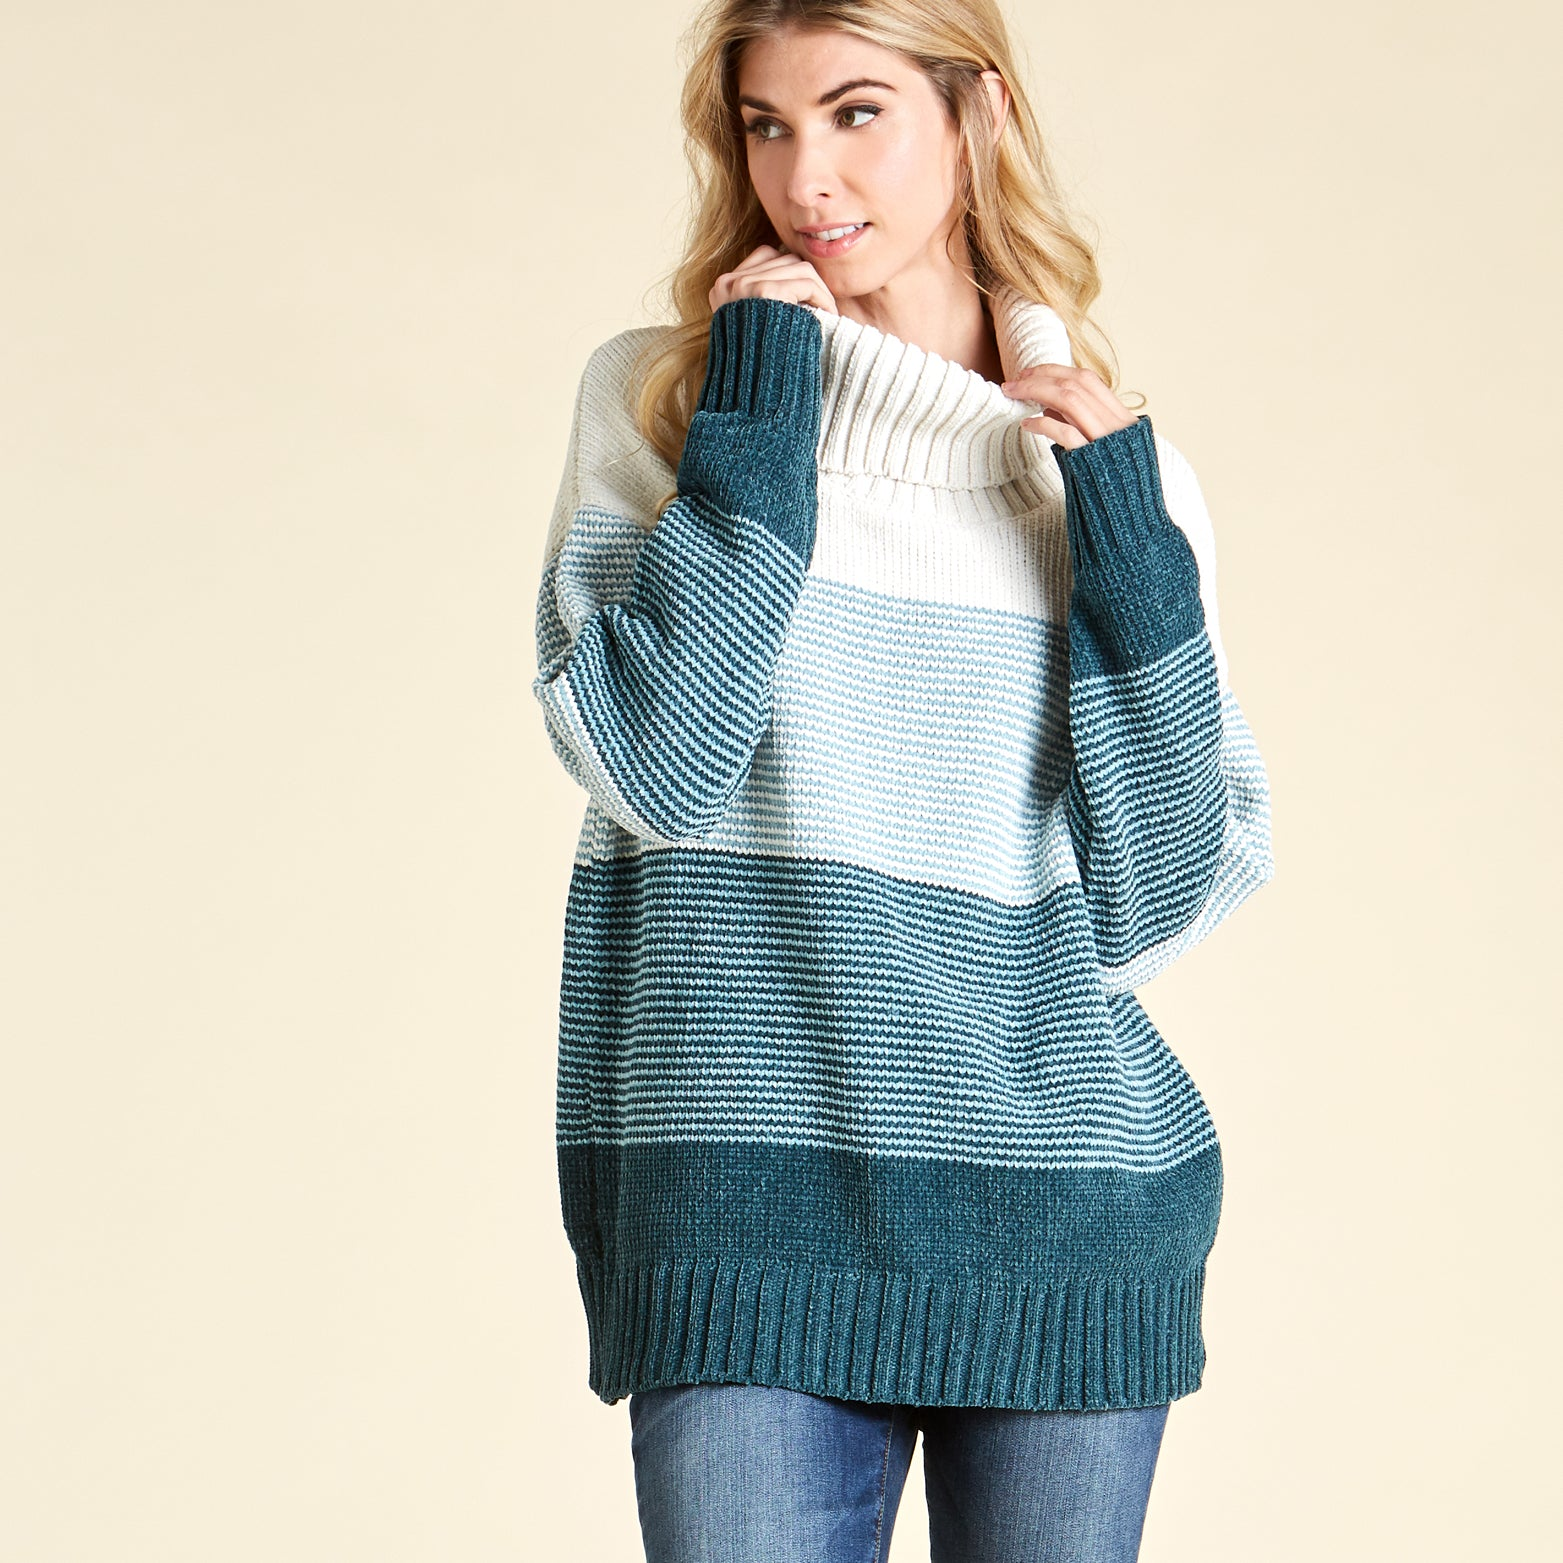 Gradient Skies Turtle Neck Sweater - Love, Kuza